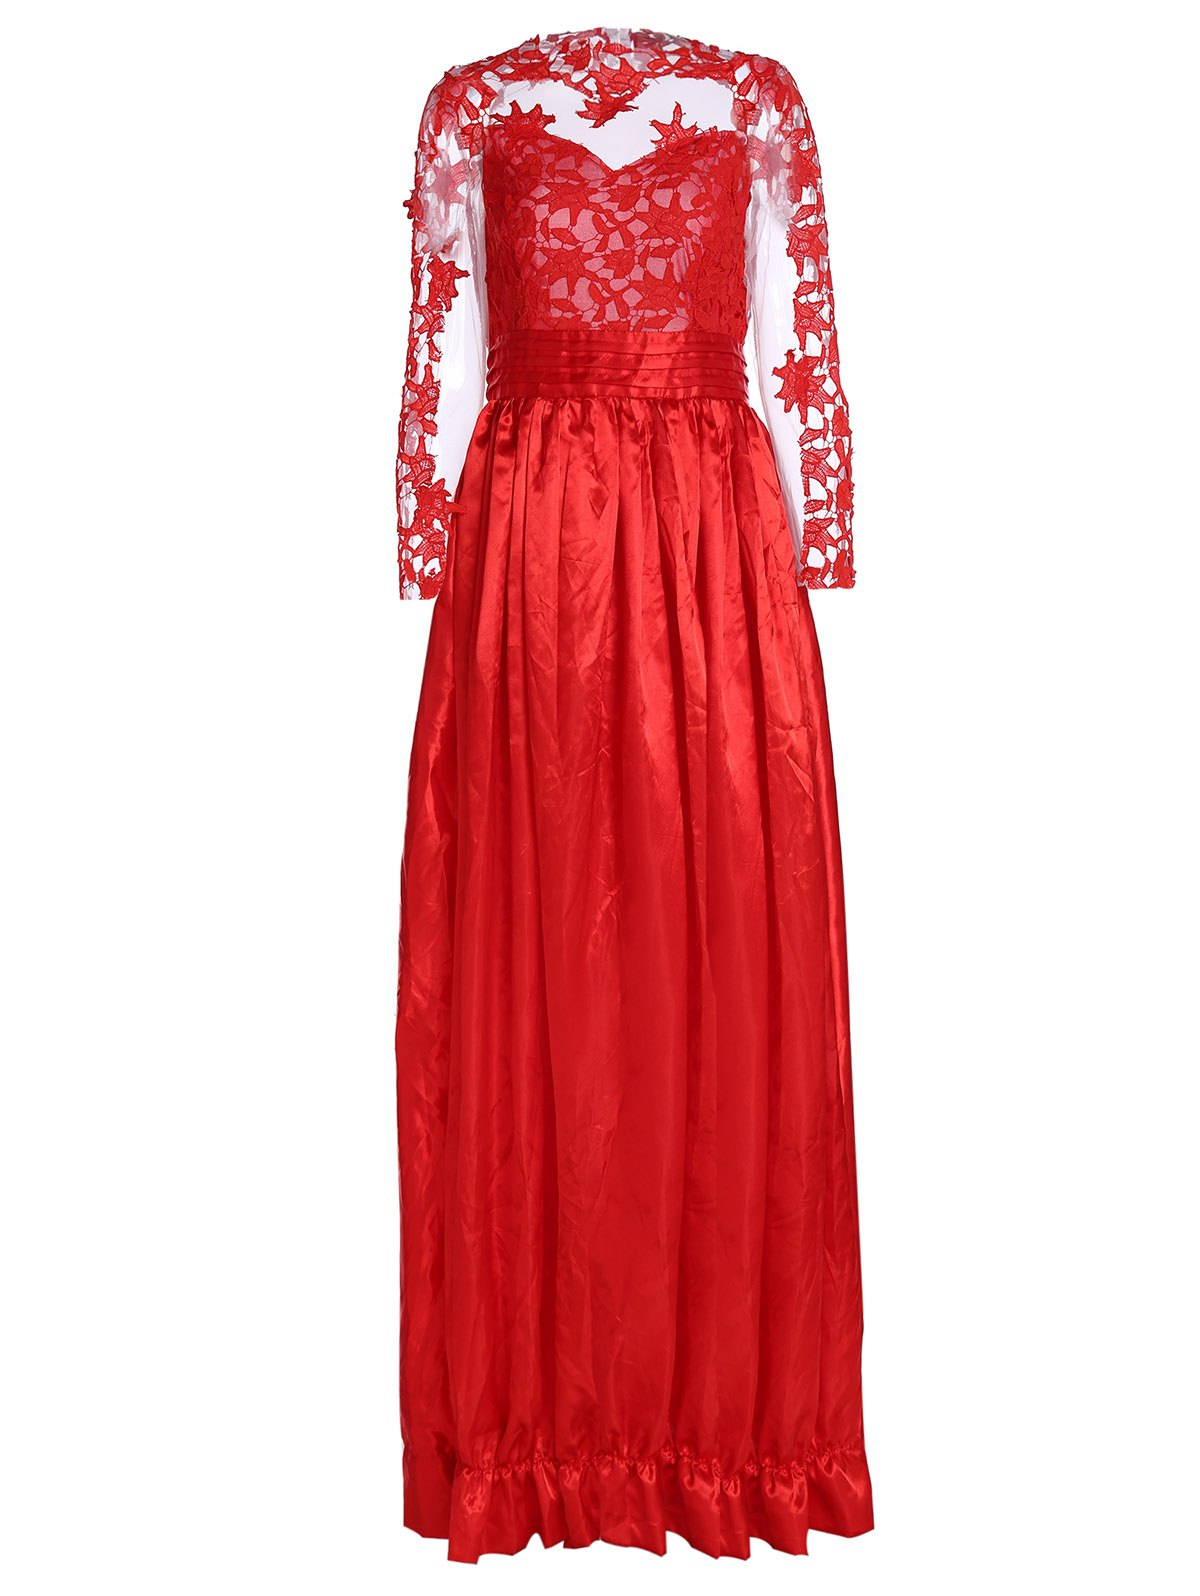 Noble Long Sleeve Ruffled Collar Lace Splicing See-Through Women's Prom Dress - RED L